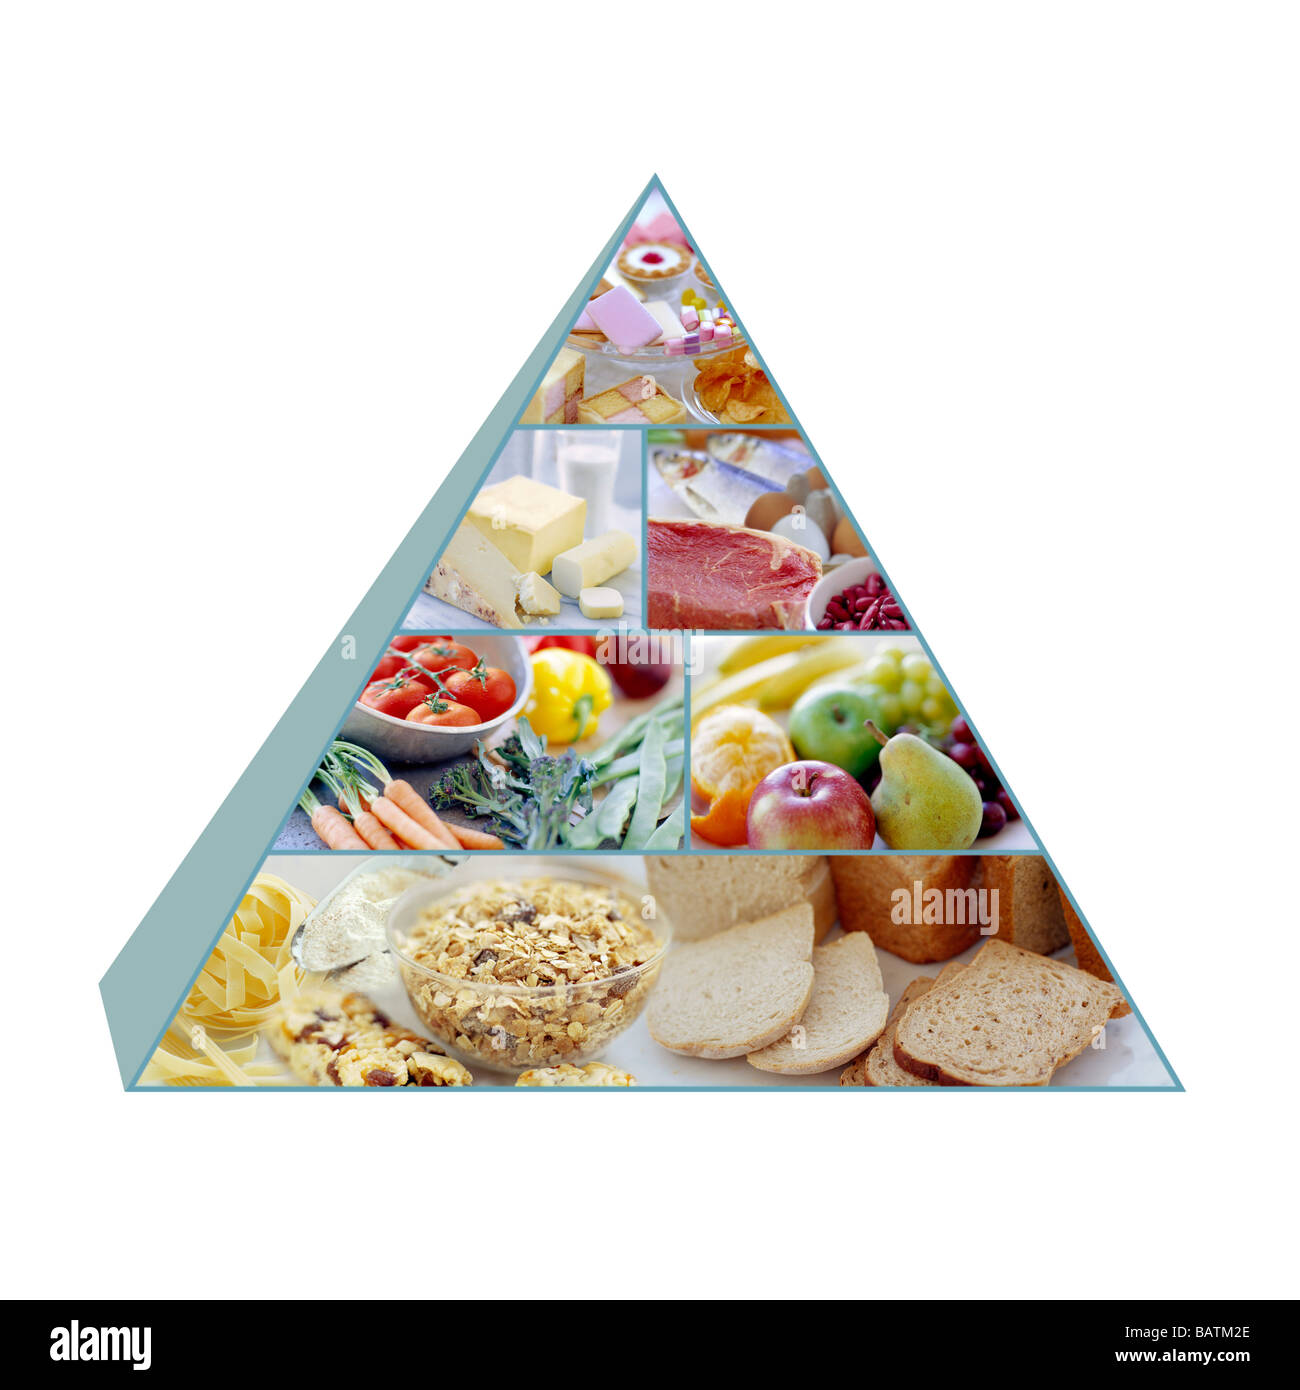 Food Pyramid Showing The Recommended Proportions Of Types For A Healthy Balanced Diet